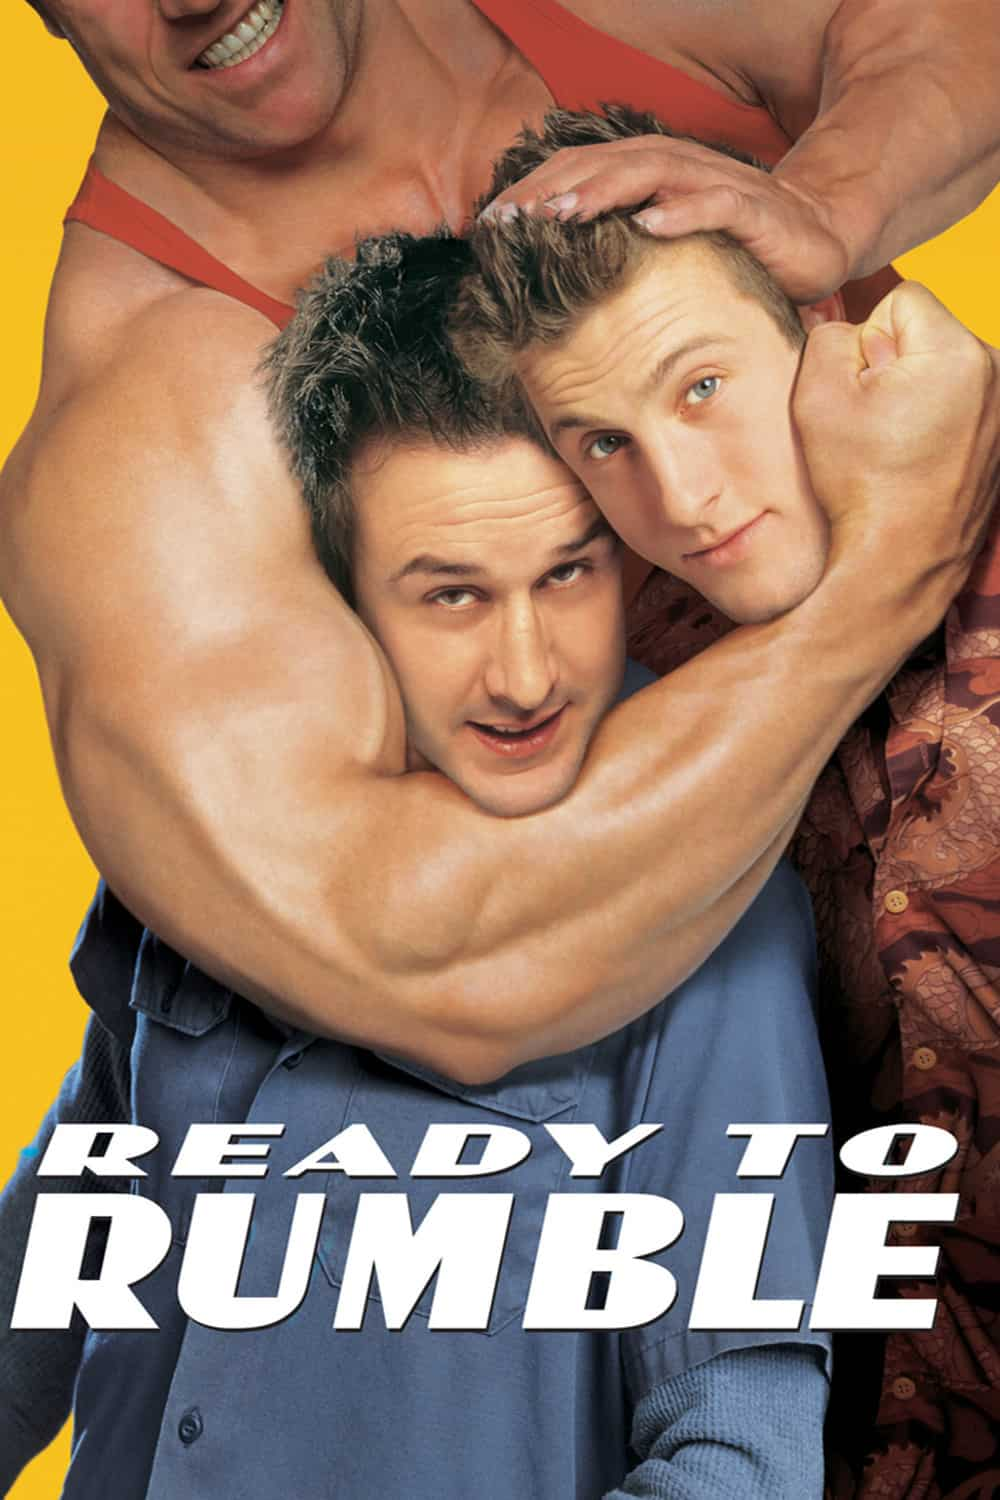 Ready to Rumble, 2000